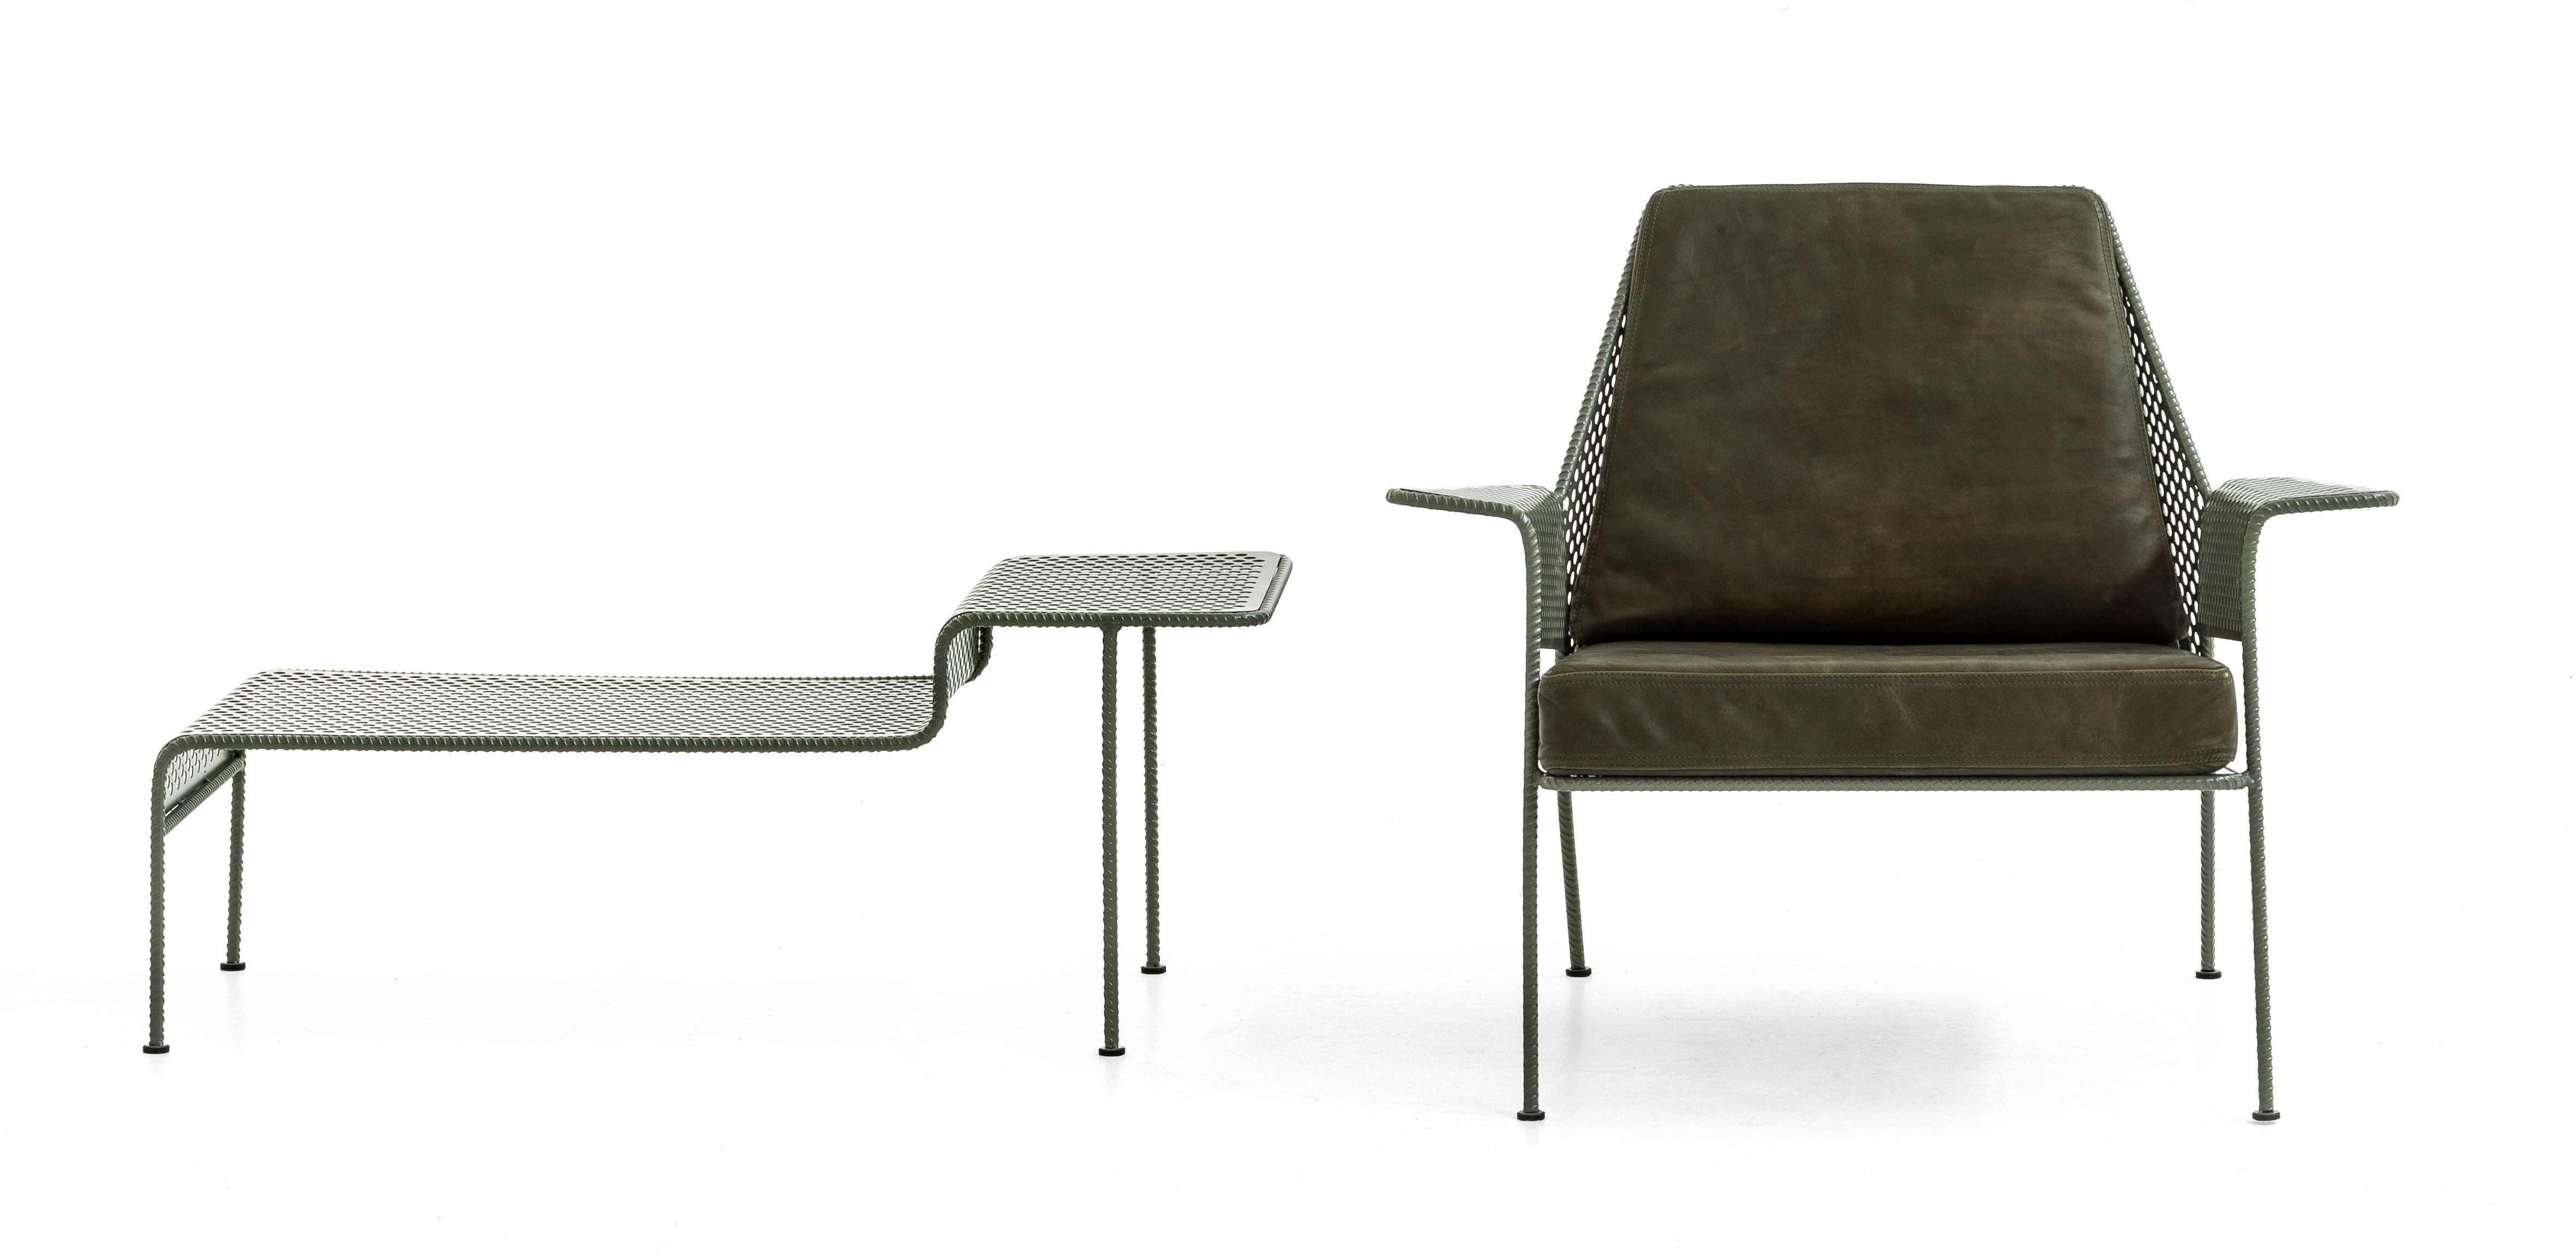 Table Basse Work Is Over M Tal Perfor 110 X 45 Cm Anthracite Diesel With Moroso